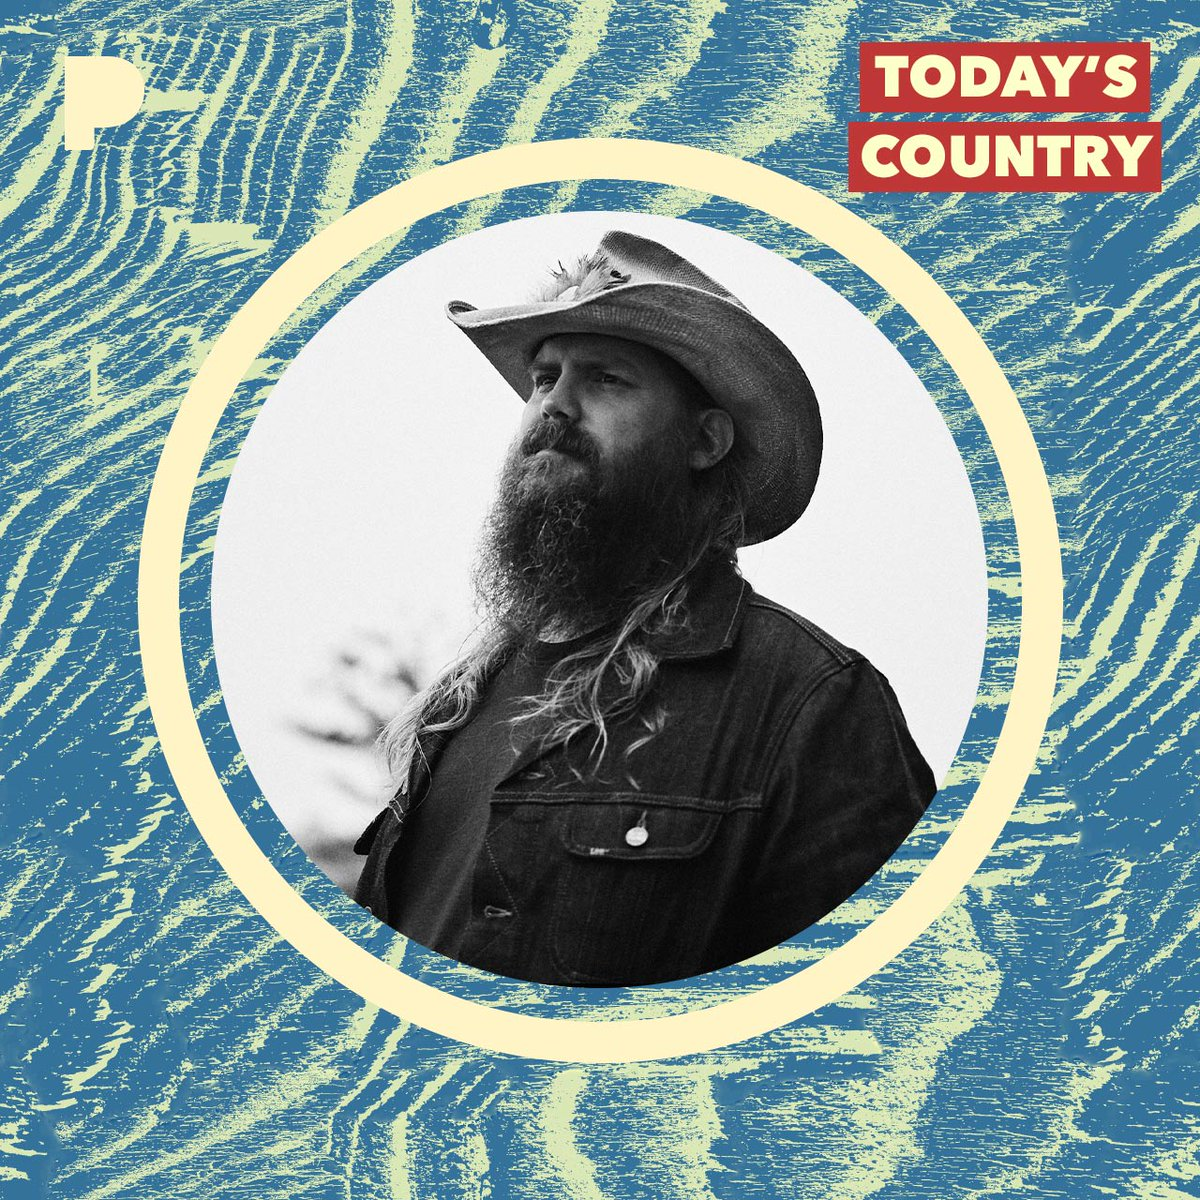 Hear stories about my new album, 'Starting Over' in addition to handpicked songs from my favorite artists when you turn on @Pandora's Today's Country station into the Chris Stapleton Listening Room experience.   Check it out here: